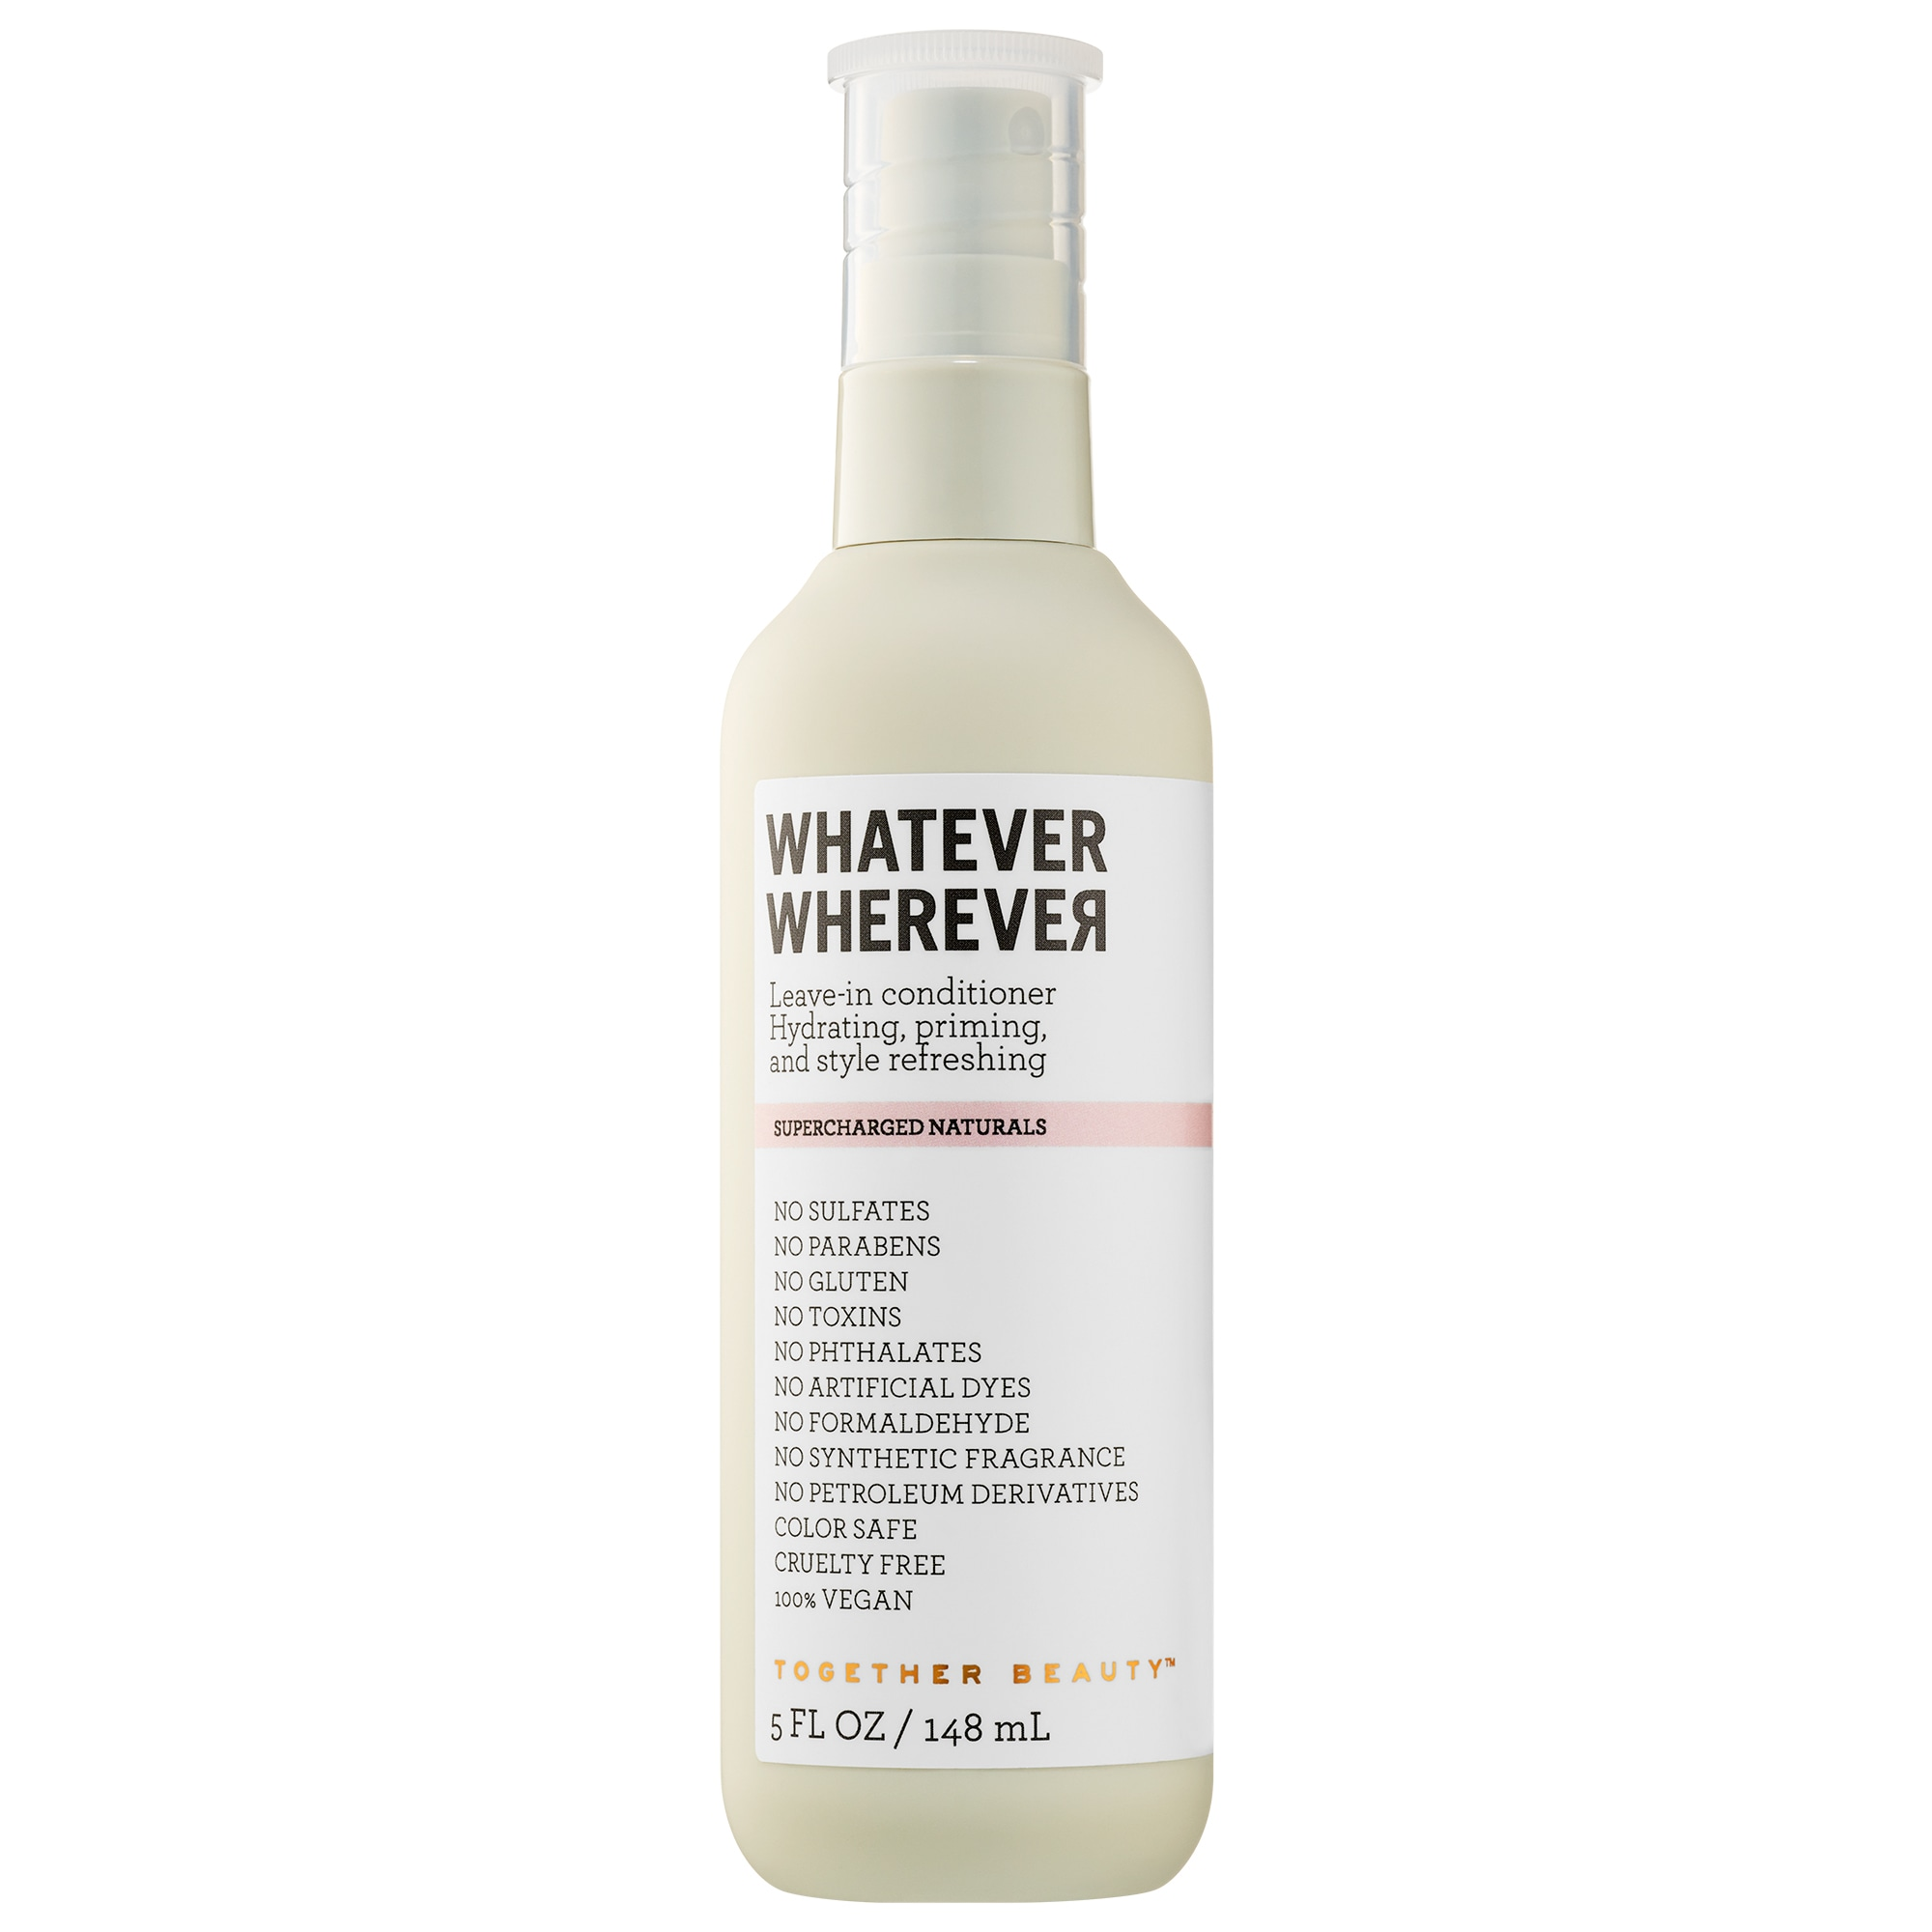 Together Beauty - Whatever Wherever Leave-In Conditioner